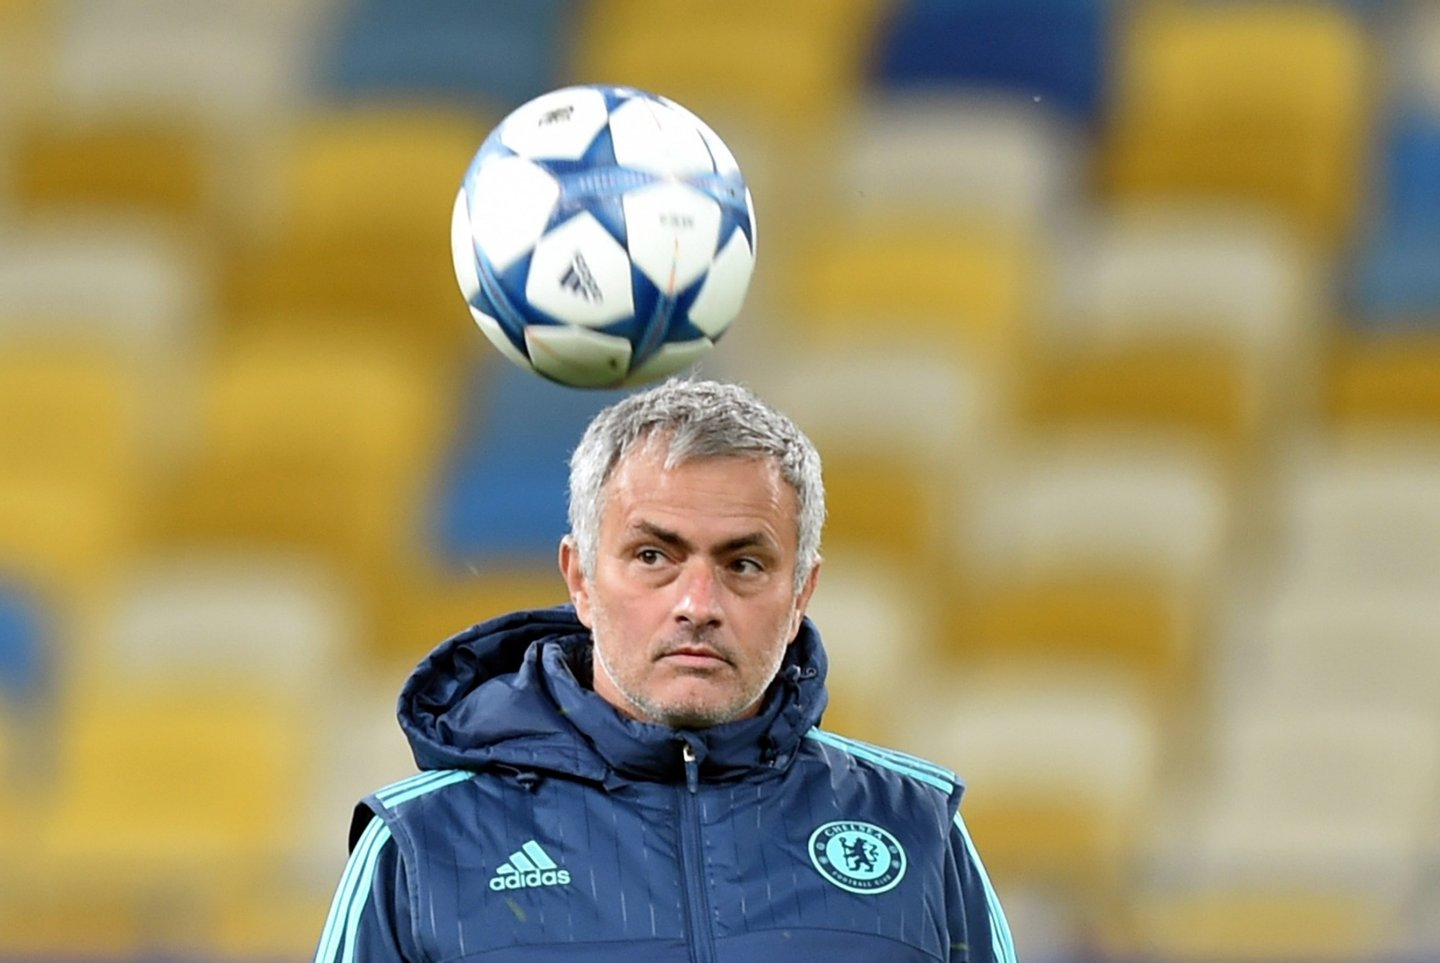 Chelsea's Portuguese coach Jose Mourinho kicks a ball during a training session at Olimpiskiy Stadium in Kiev on October 19, 2015, a day before their Champion's League Group G football match against FC Dinamo. AFP PHOTO / SERGEI SUPINSKY (Photo credit should read SERGEI SUPINSKY/AFP/Getty Images)